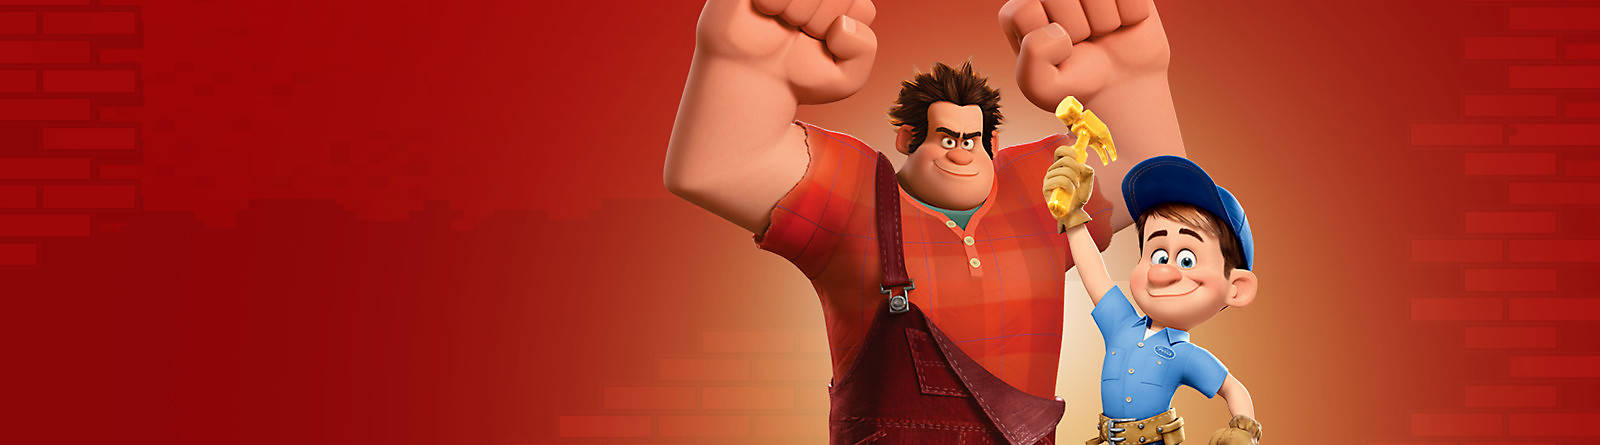 Wreck-It Ralph Discover our range of Wreck it Ralph merchandise featuring toys, figurines and more